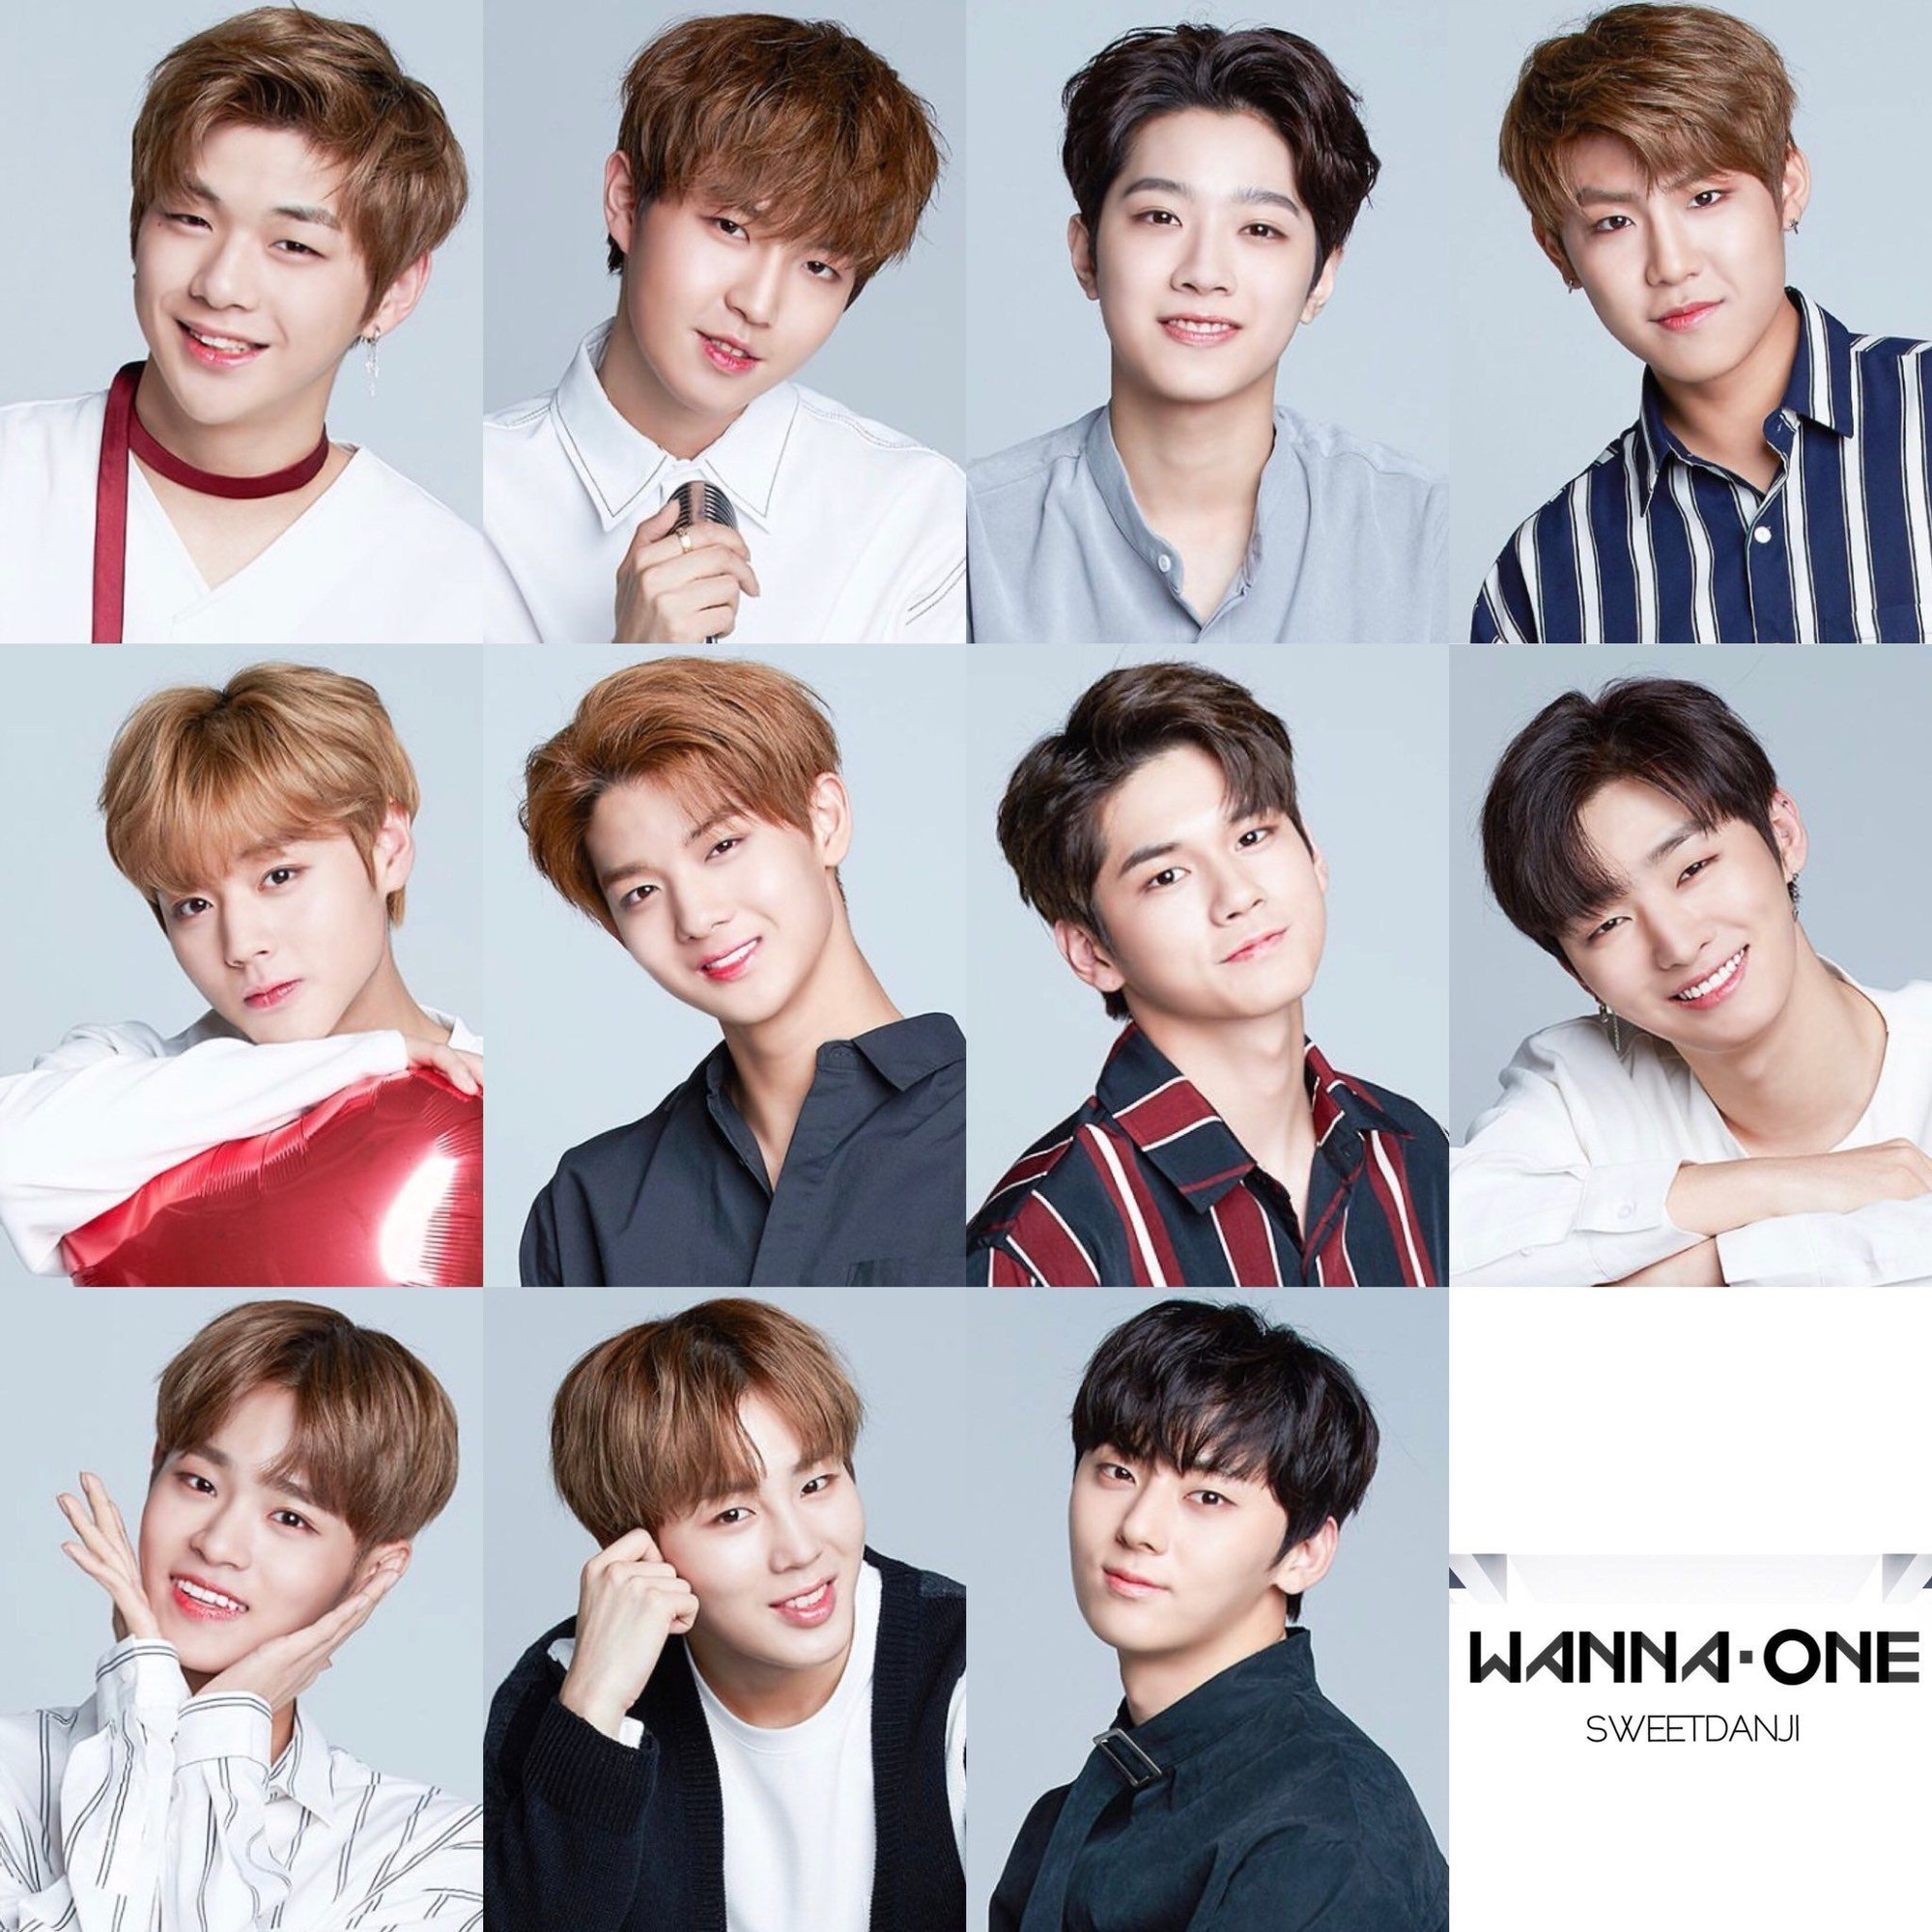 Gags that match the awards that Wanna One has achieved over the past 18 months - Picture 1.